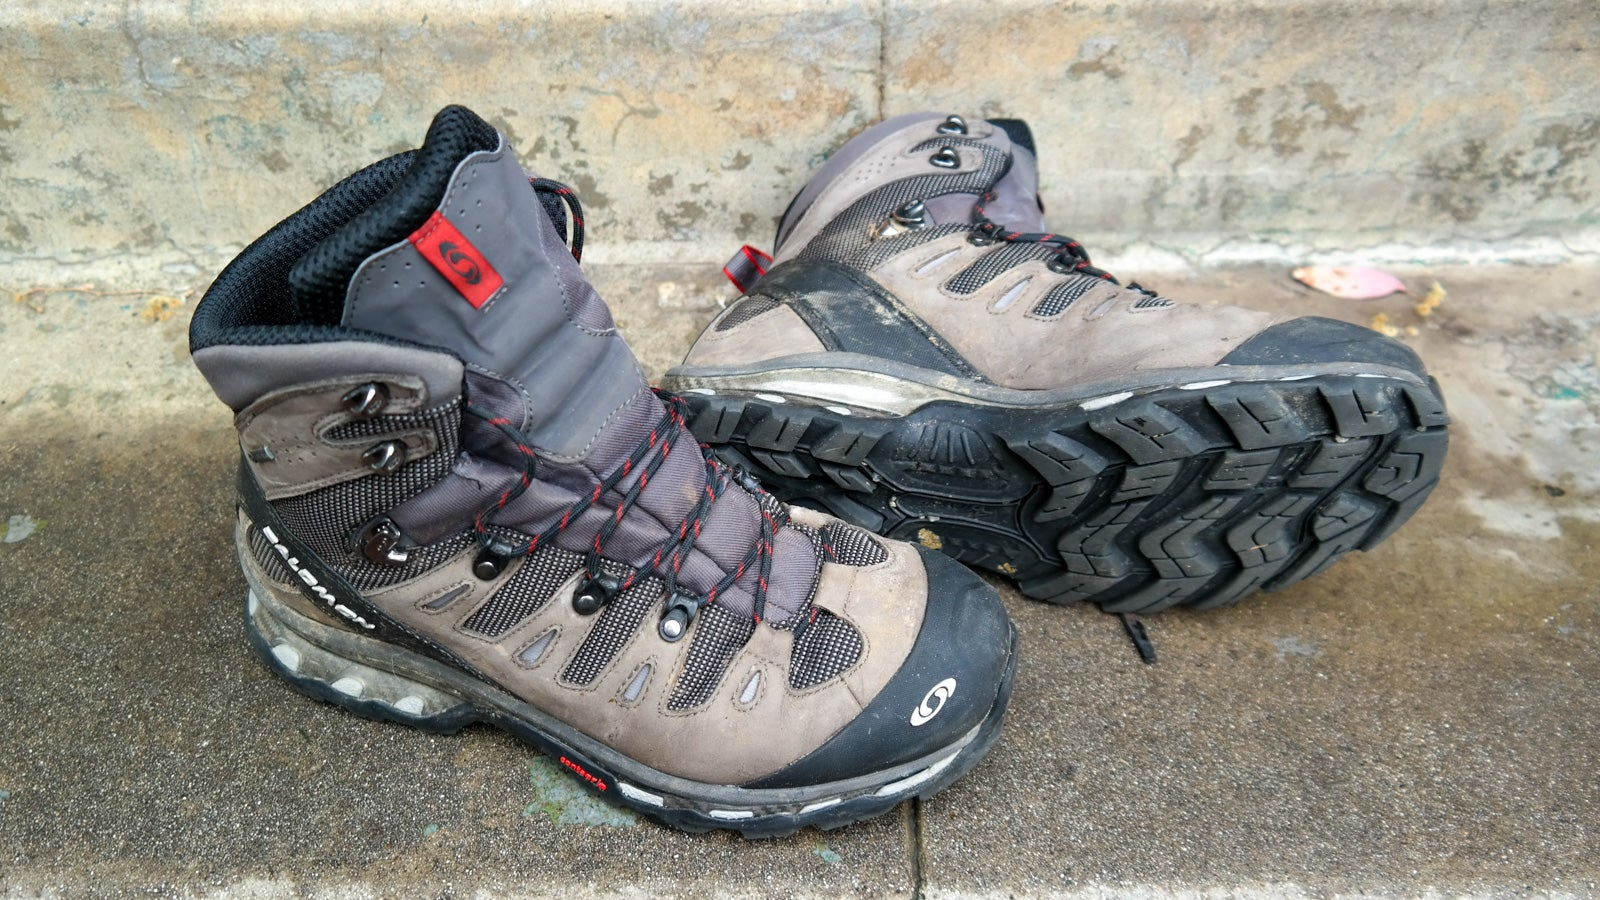 What's Better For Hiking? Boots vs Trail Runners vs Approach Shoes